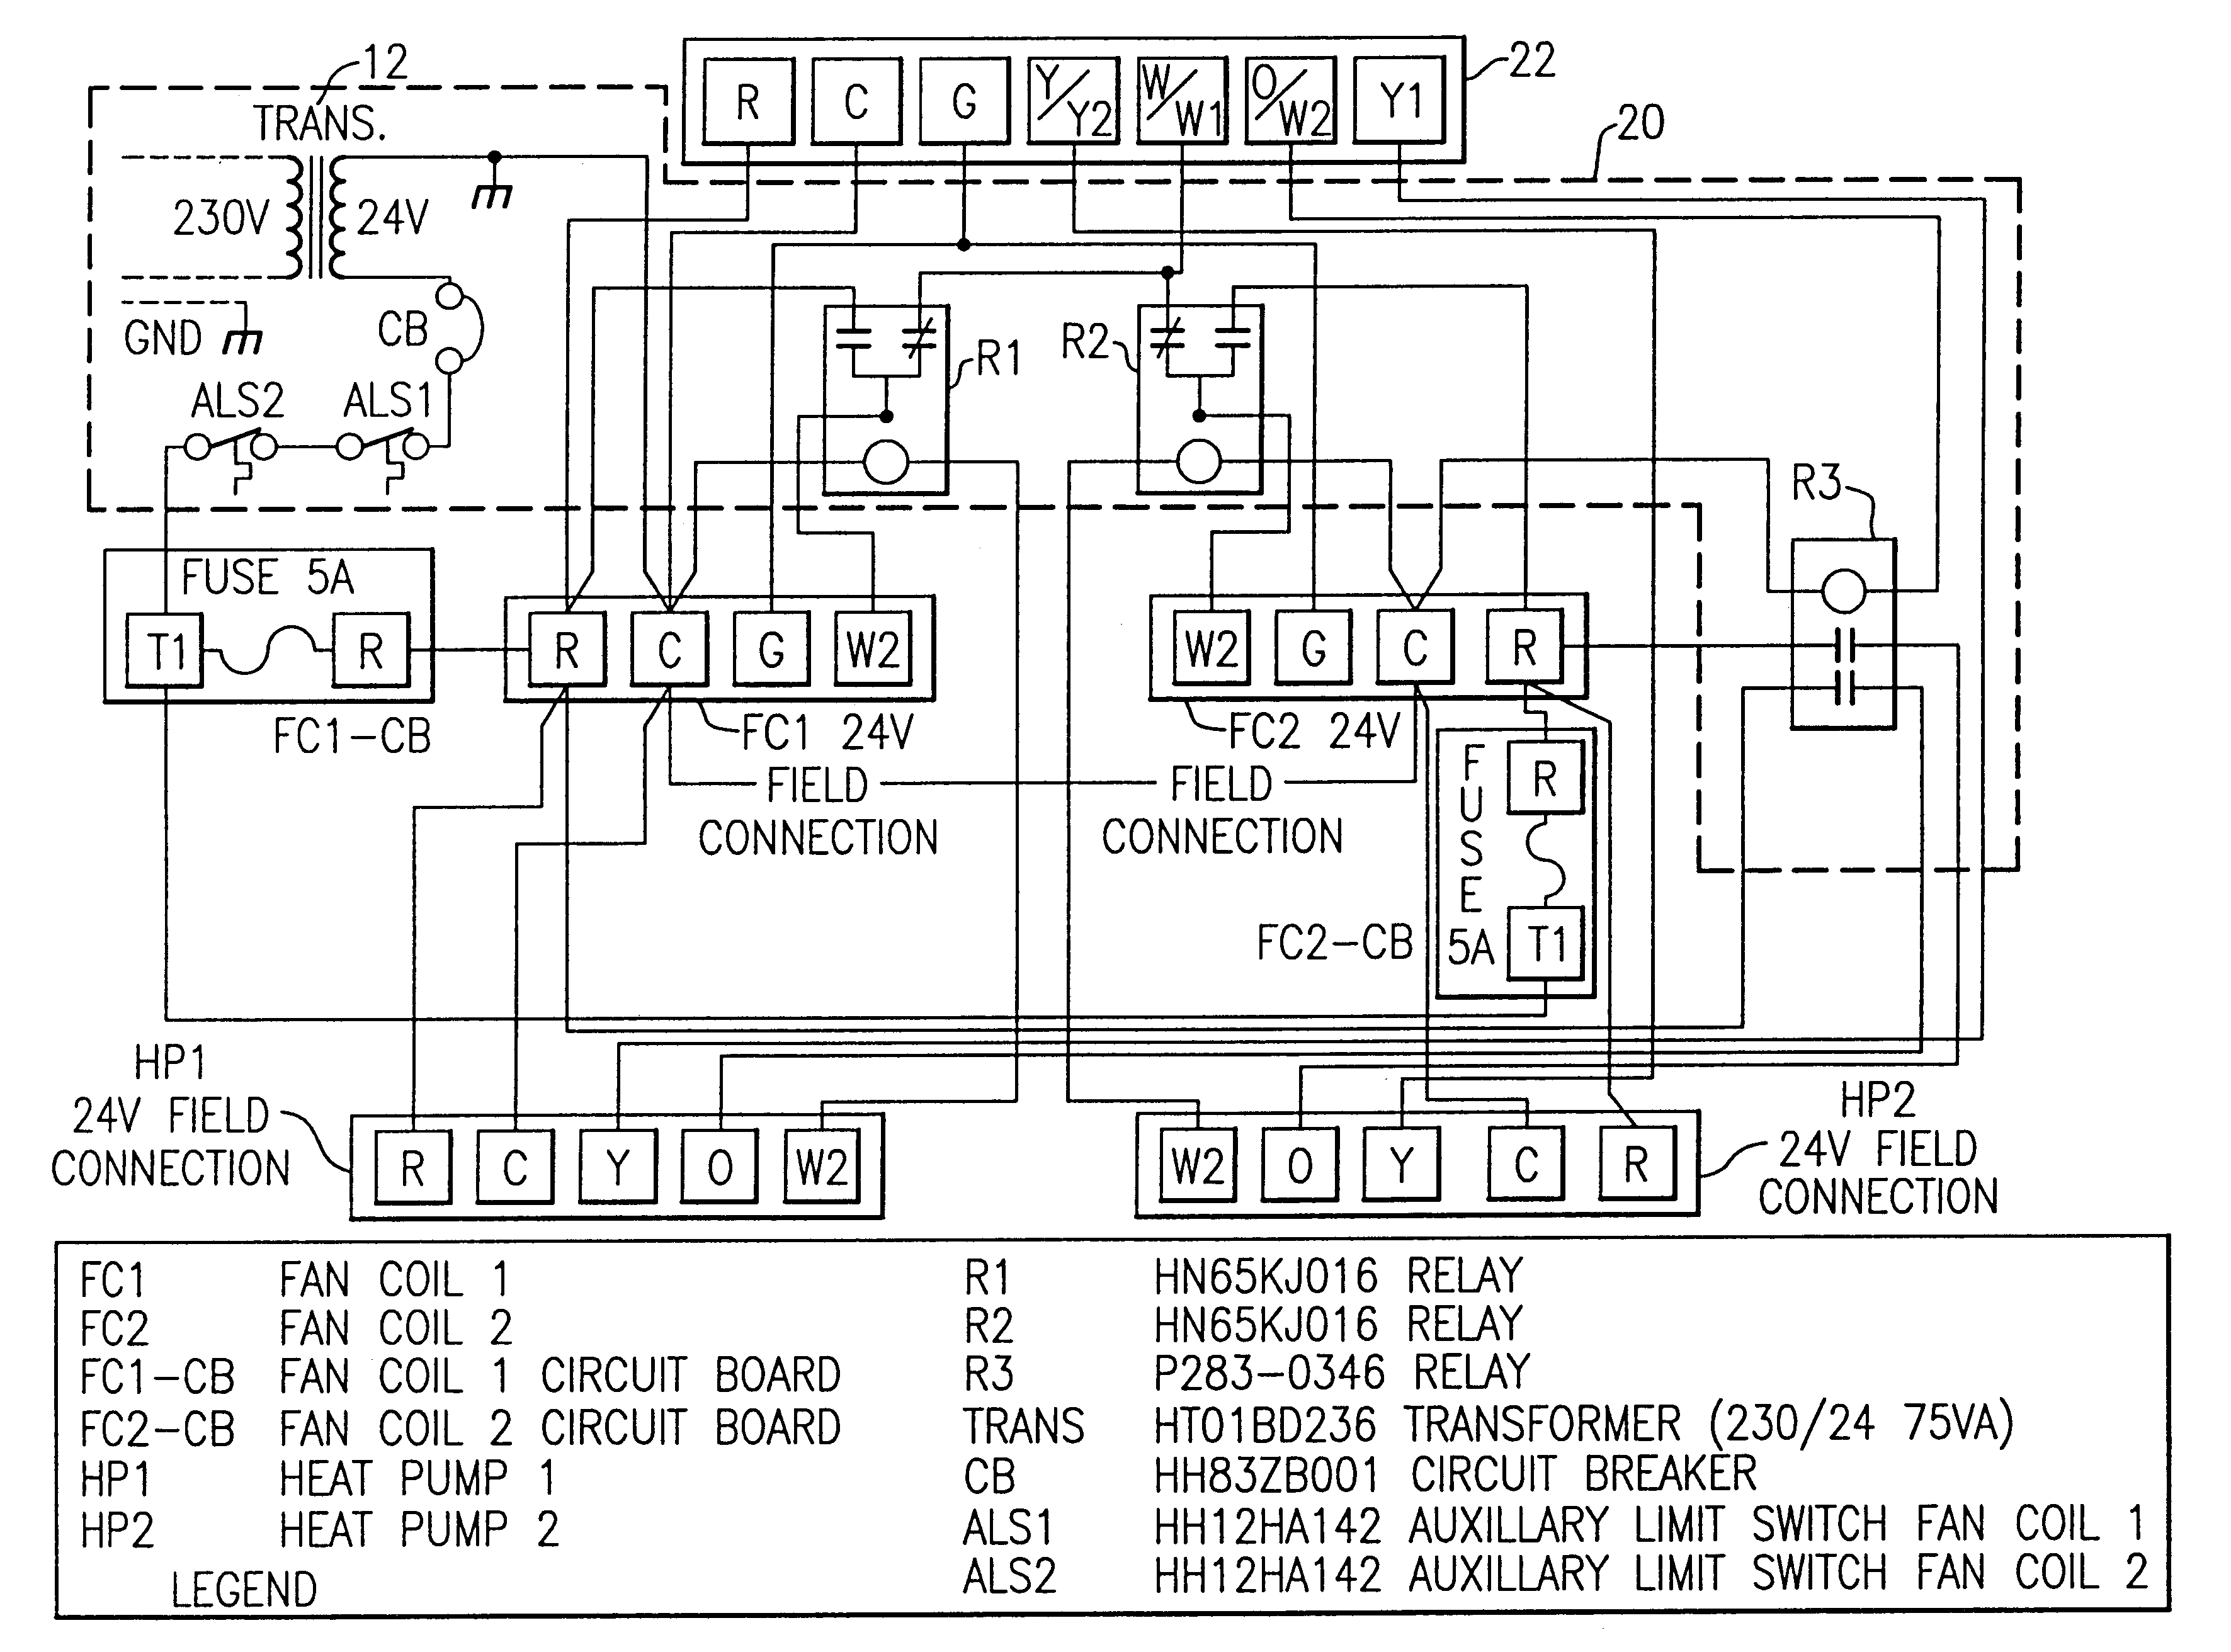 York Air Conditioner Wiring Diagram | Manual E-Books - York Air Handler Wiring Diagram